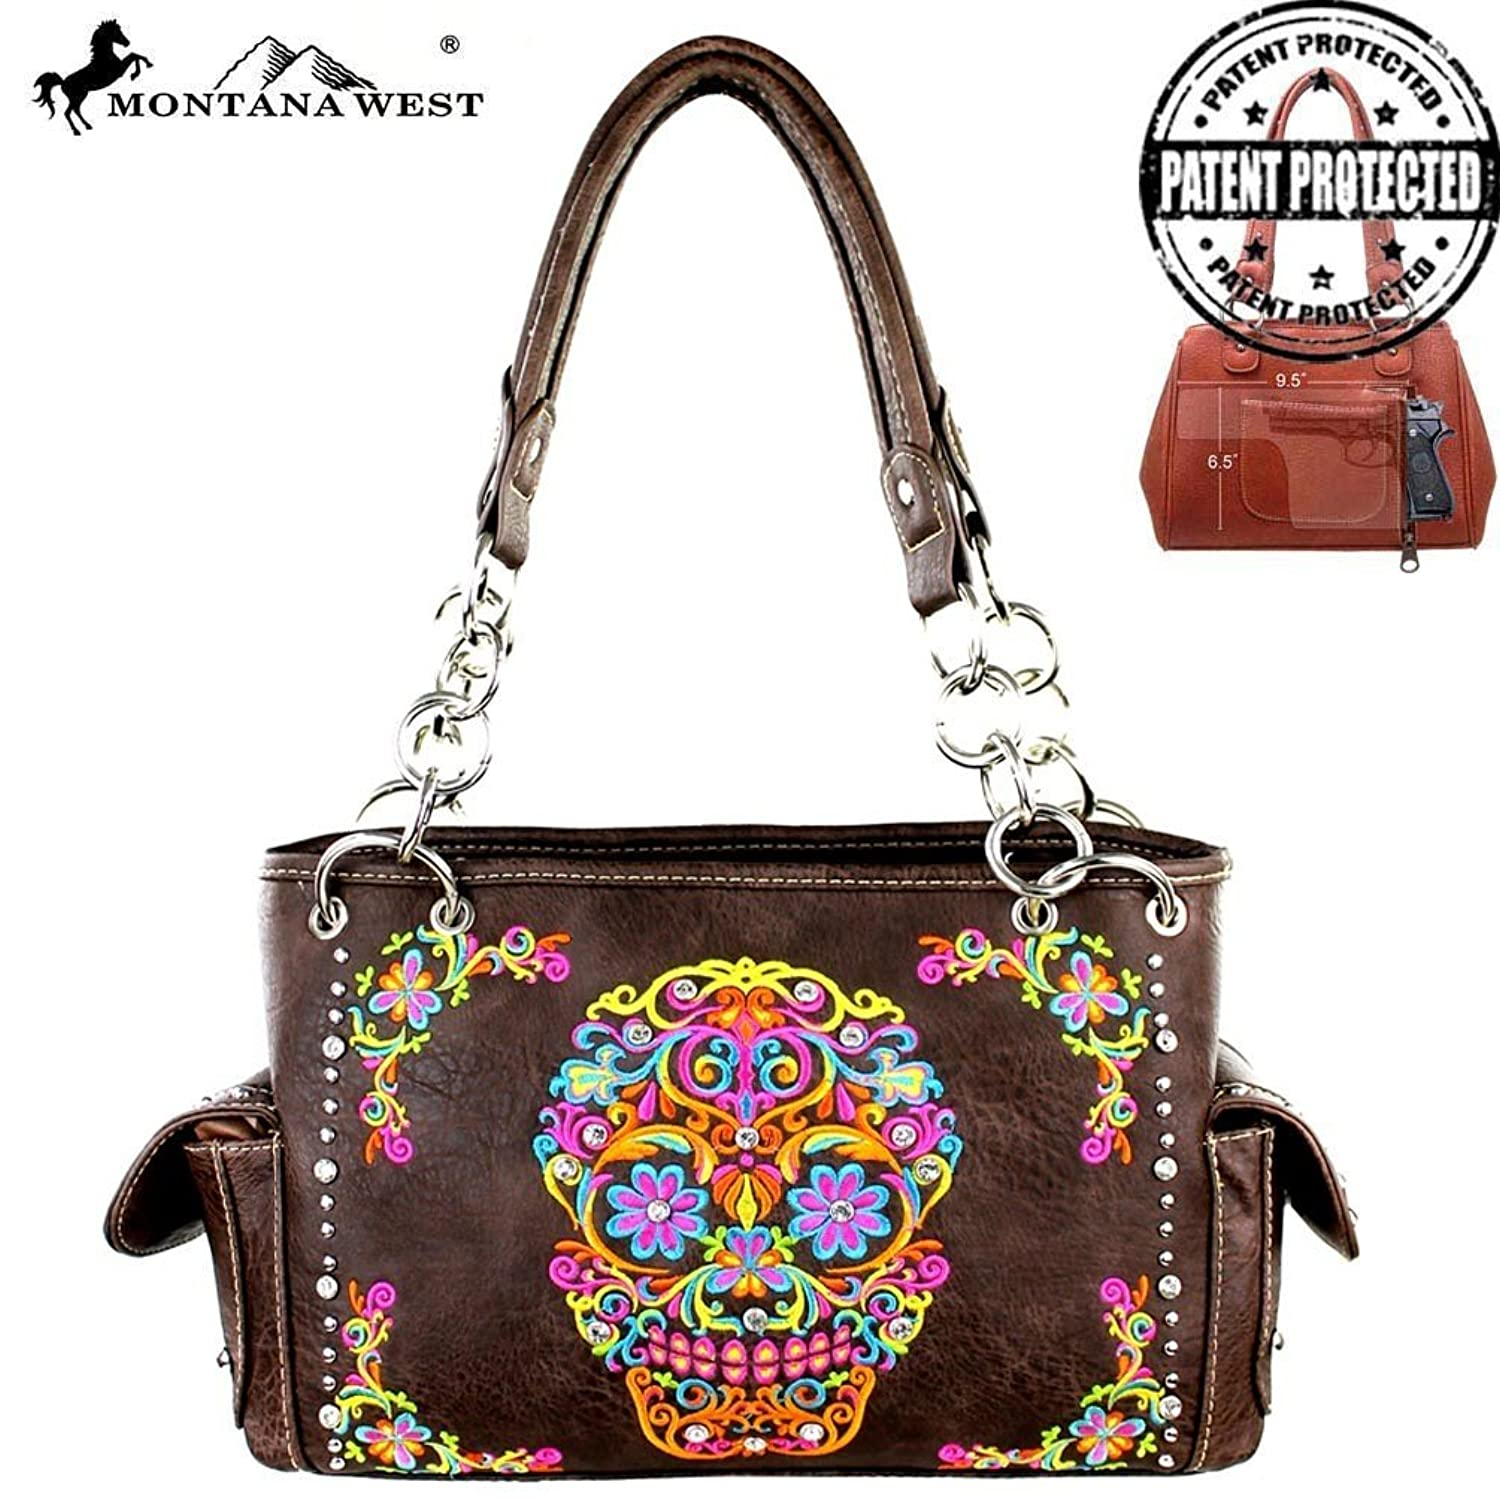 Montana West Sugar Skull Collection Colorful Embroidery Purse Coffee